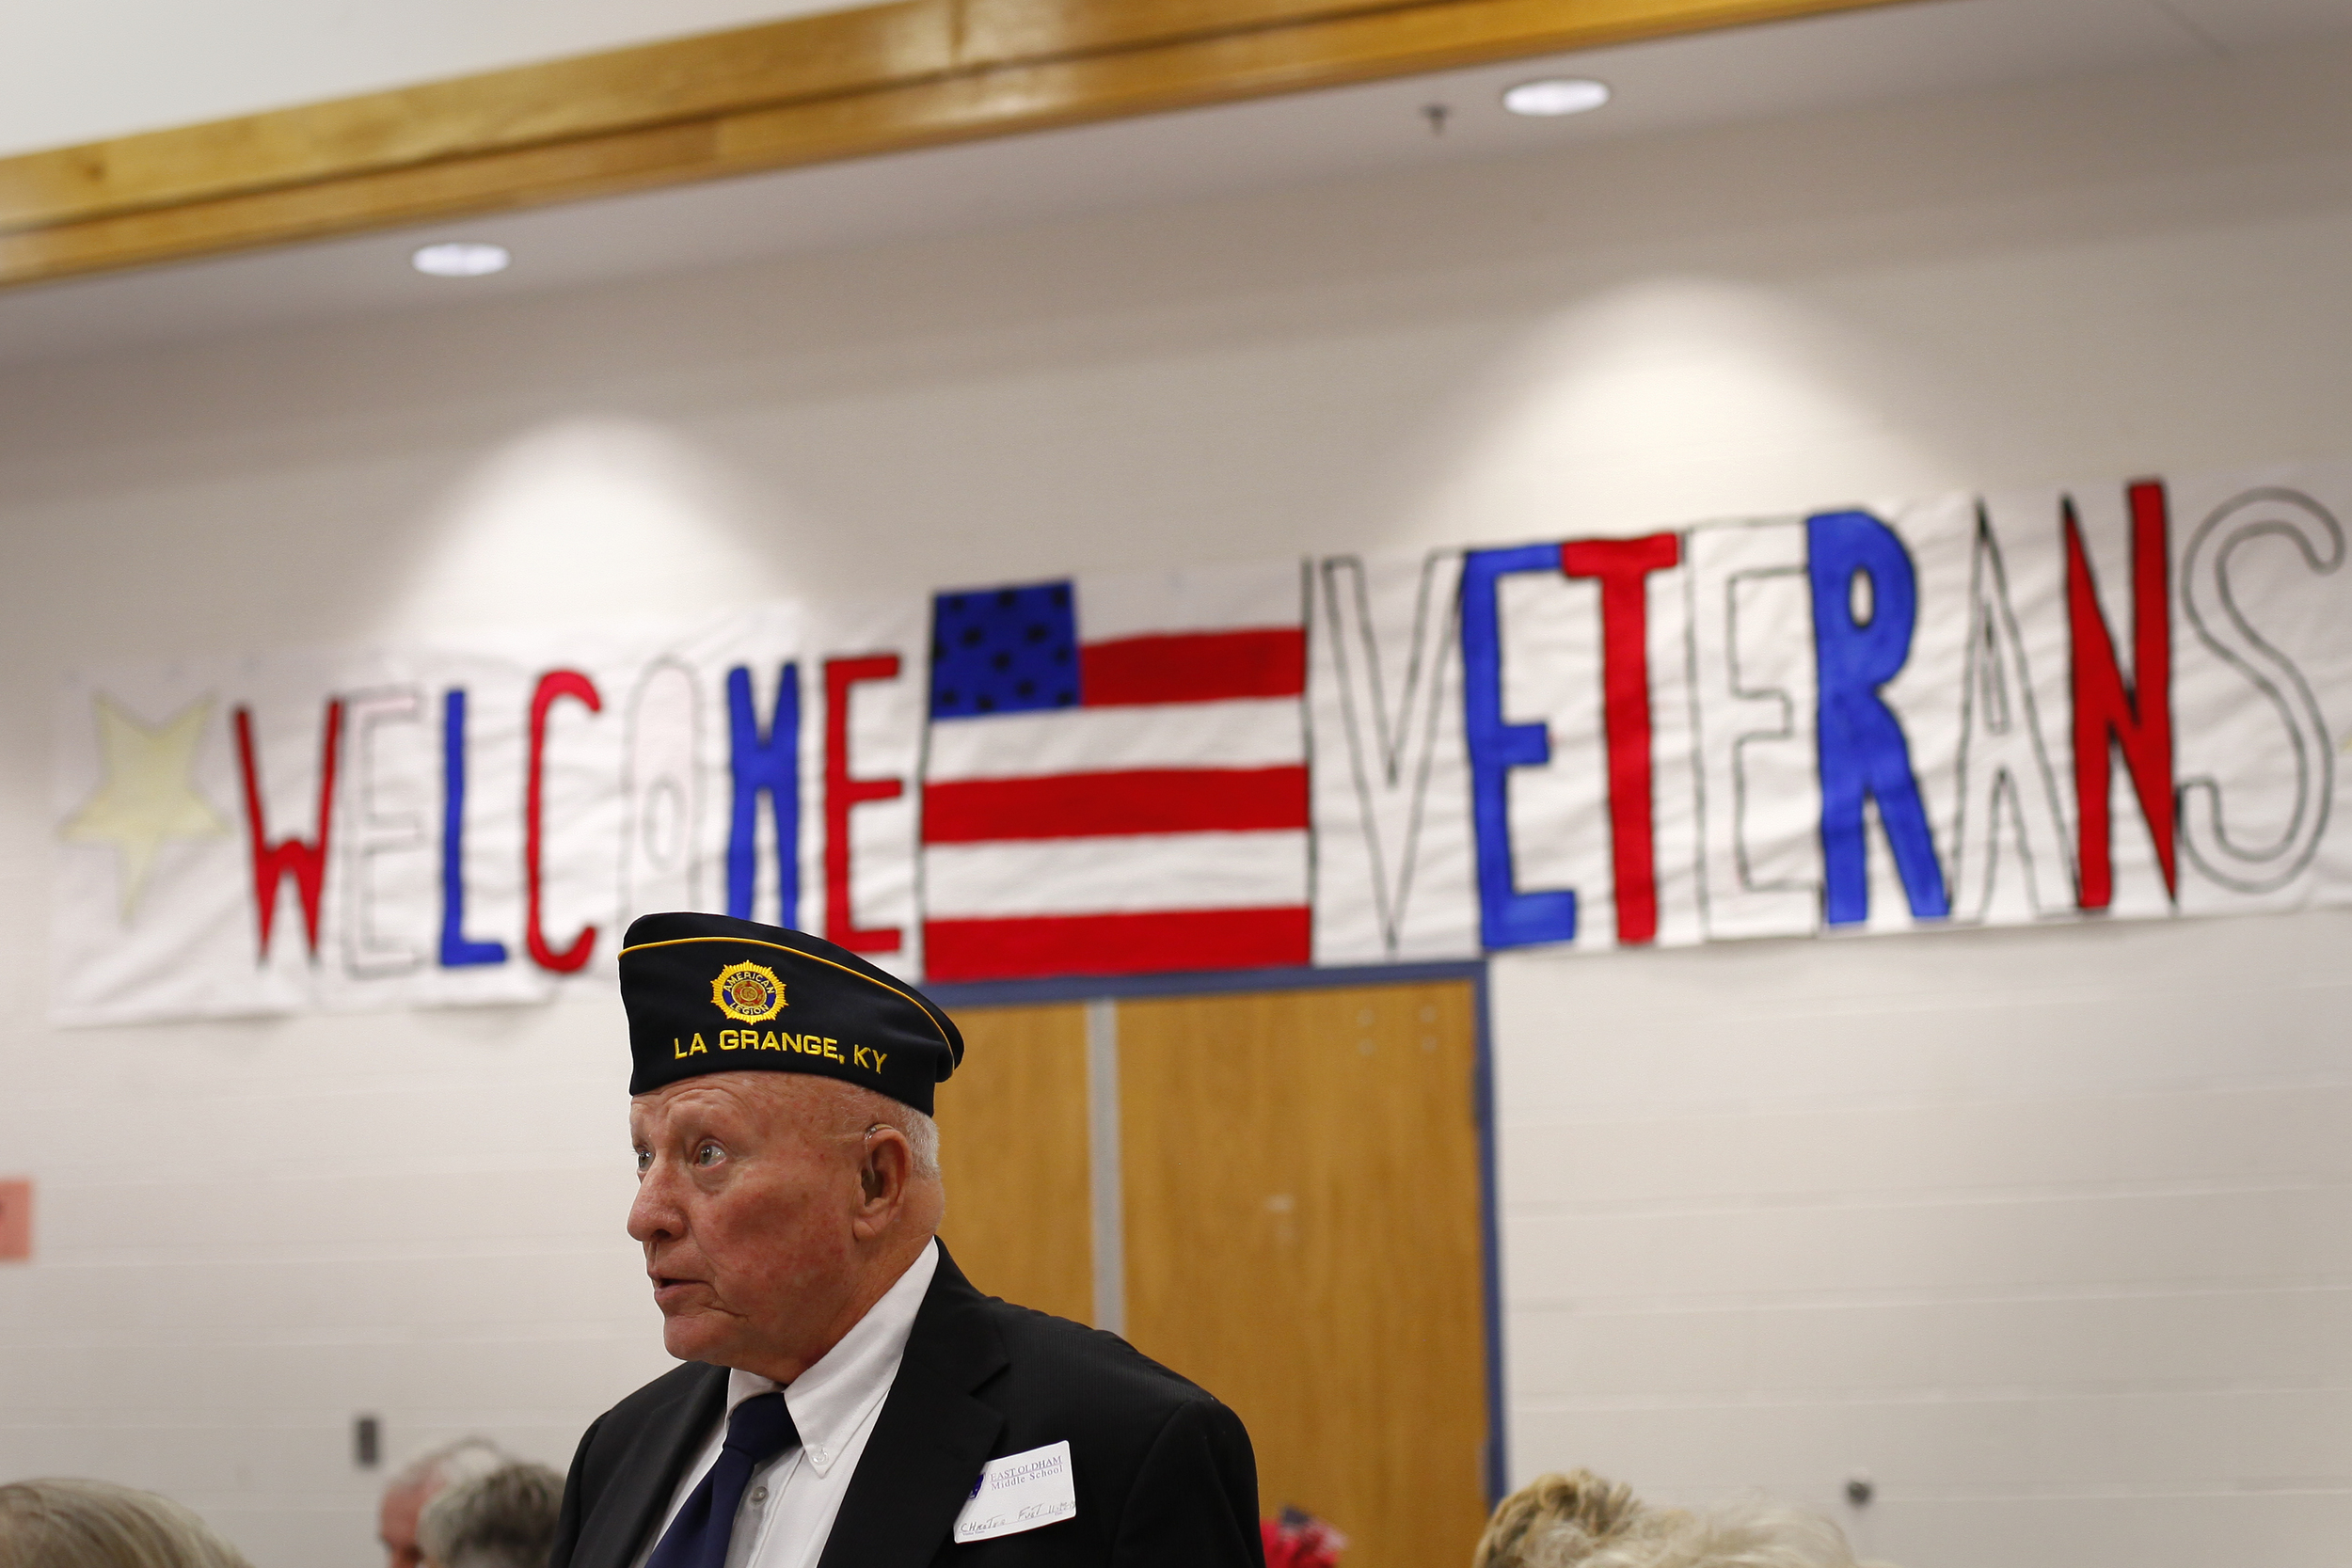 Air Force veteran Chester Fust, of La Grange, Ky., was one of the approximately  63 veterans invited to East Oldham Middle School for their celebration of the Armed Forces. The event was held November 13, as part of the schools monthly initiative to build school and community pride.